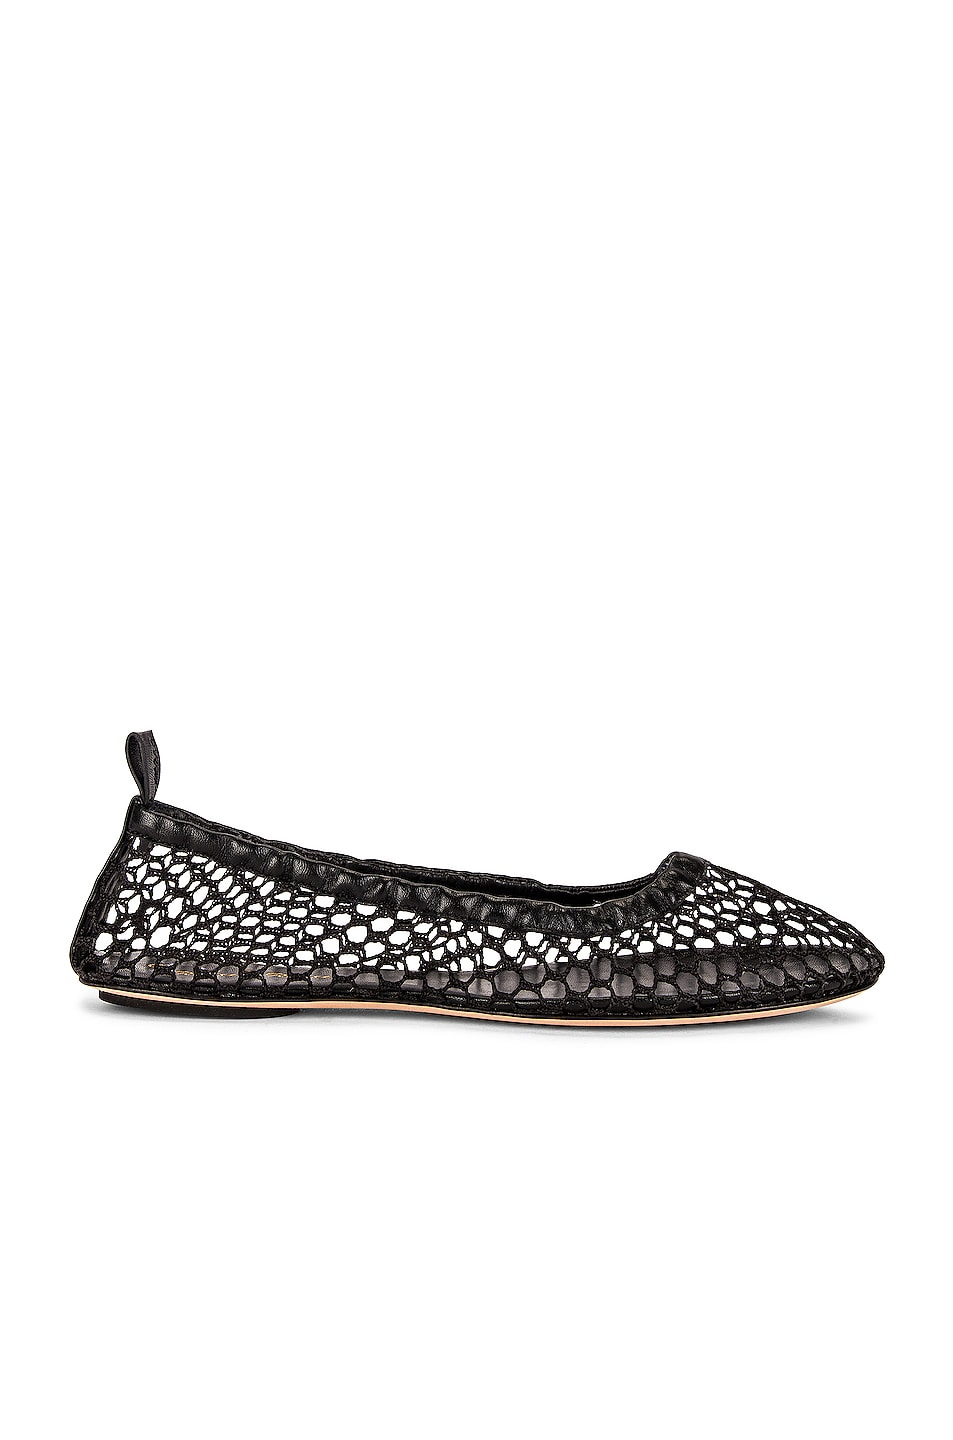 Image 1 of Gianvito Rossi Leather Flats in Black